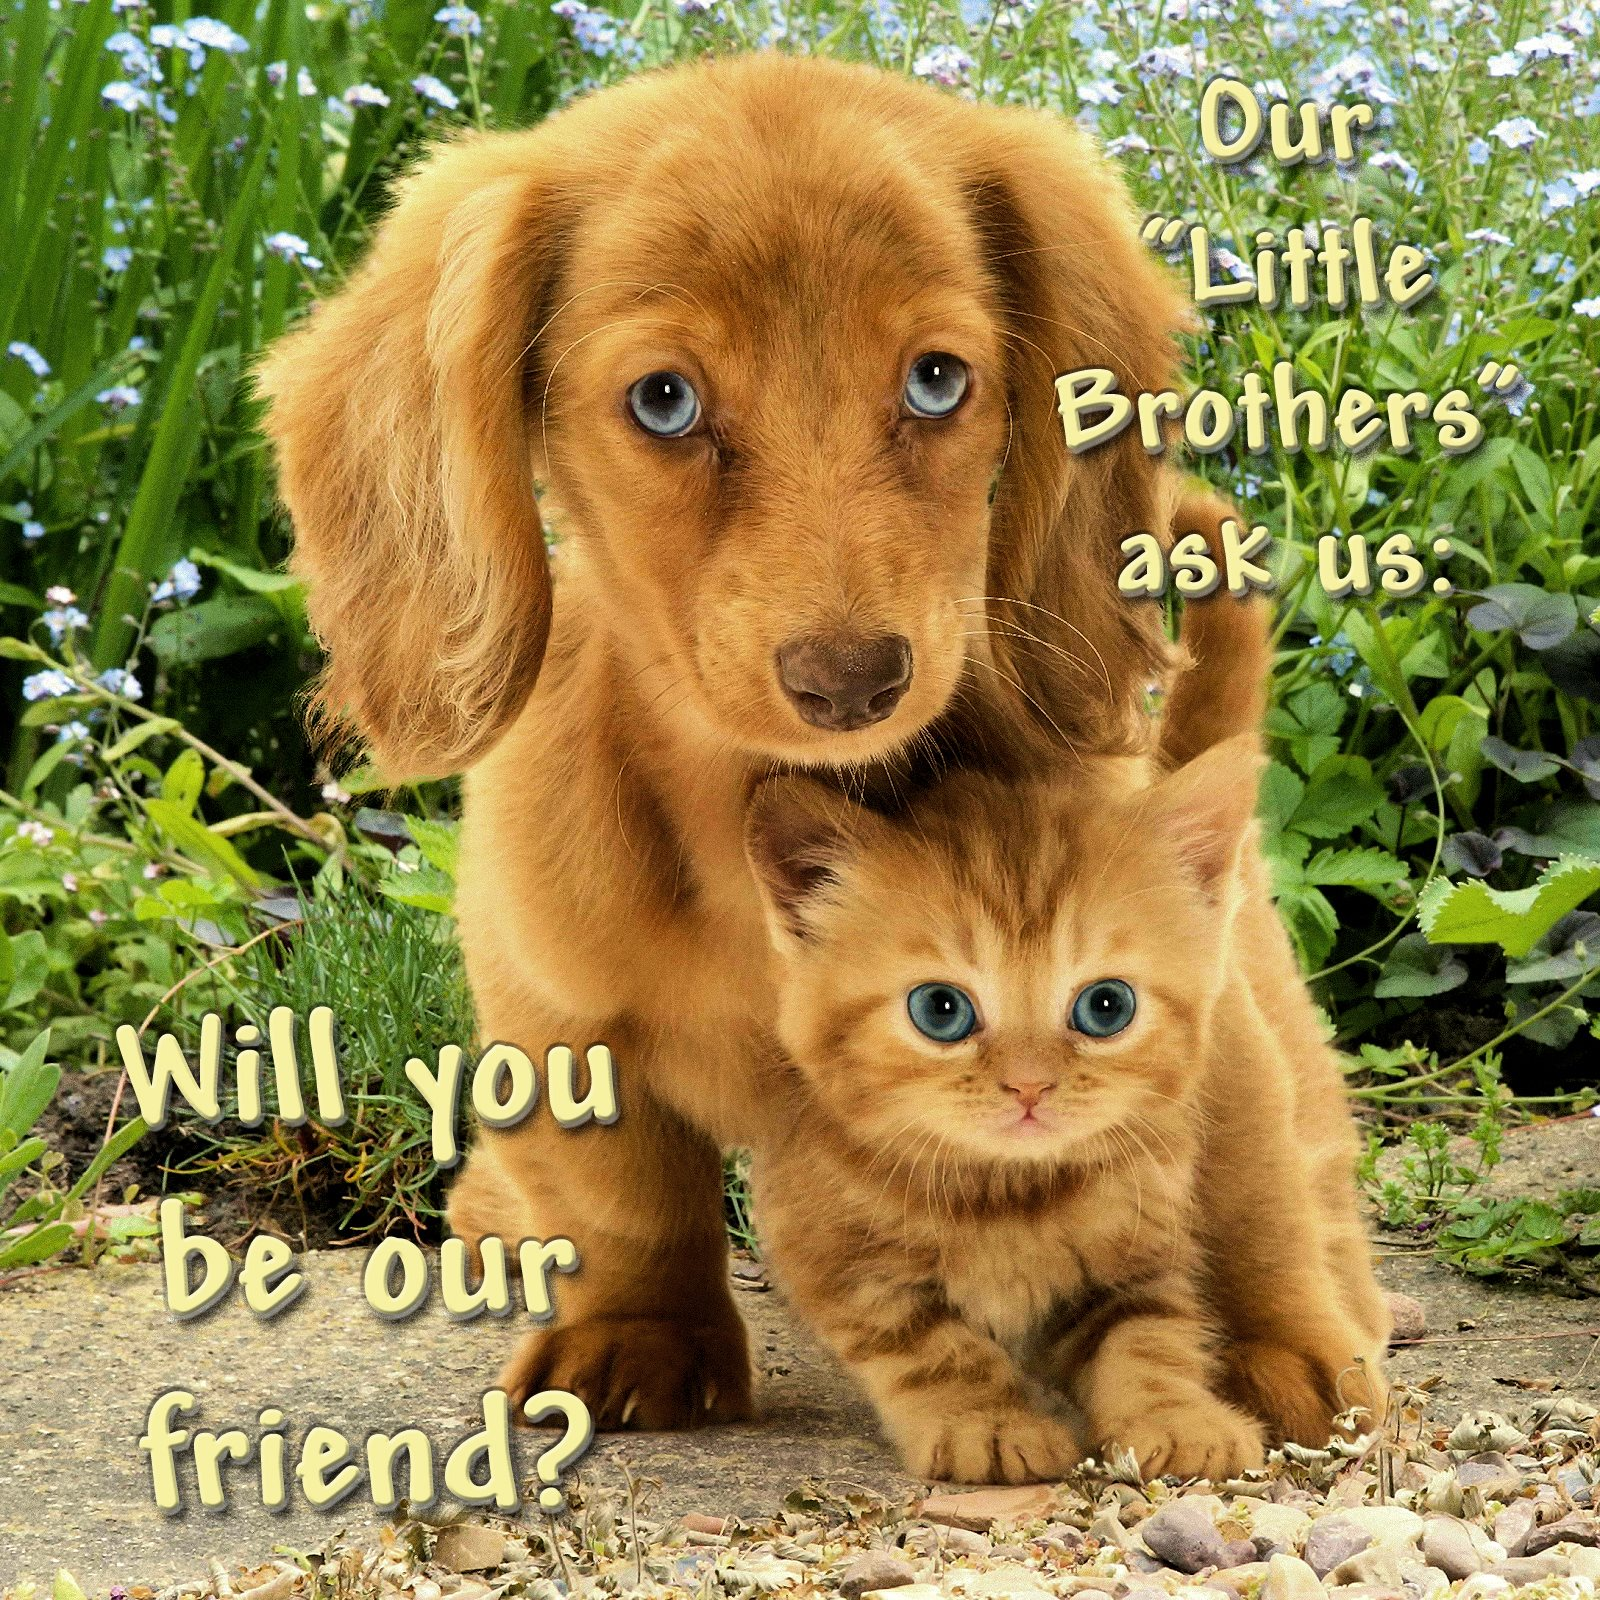 00 dog and cat 020716